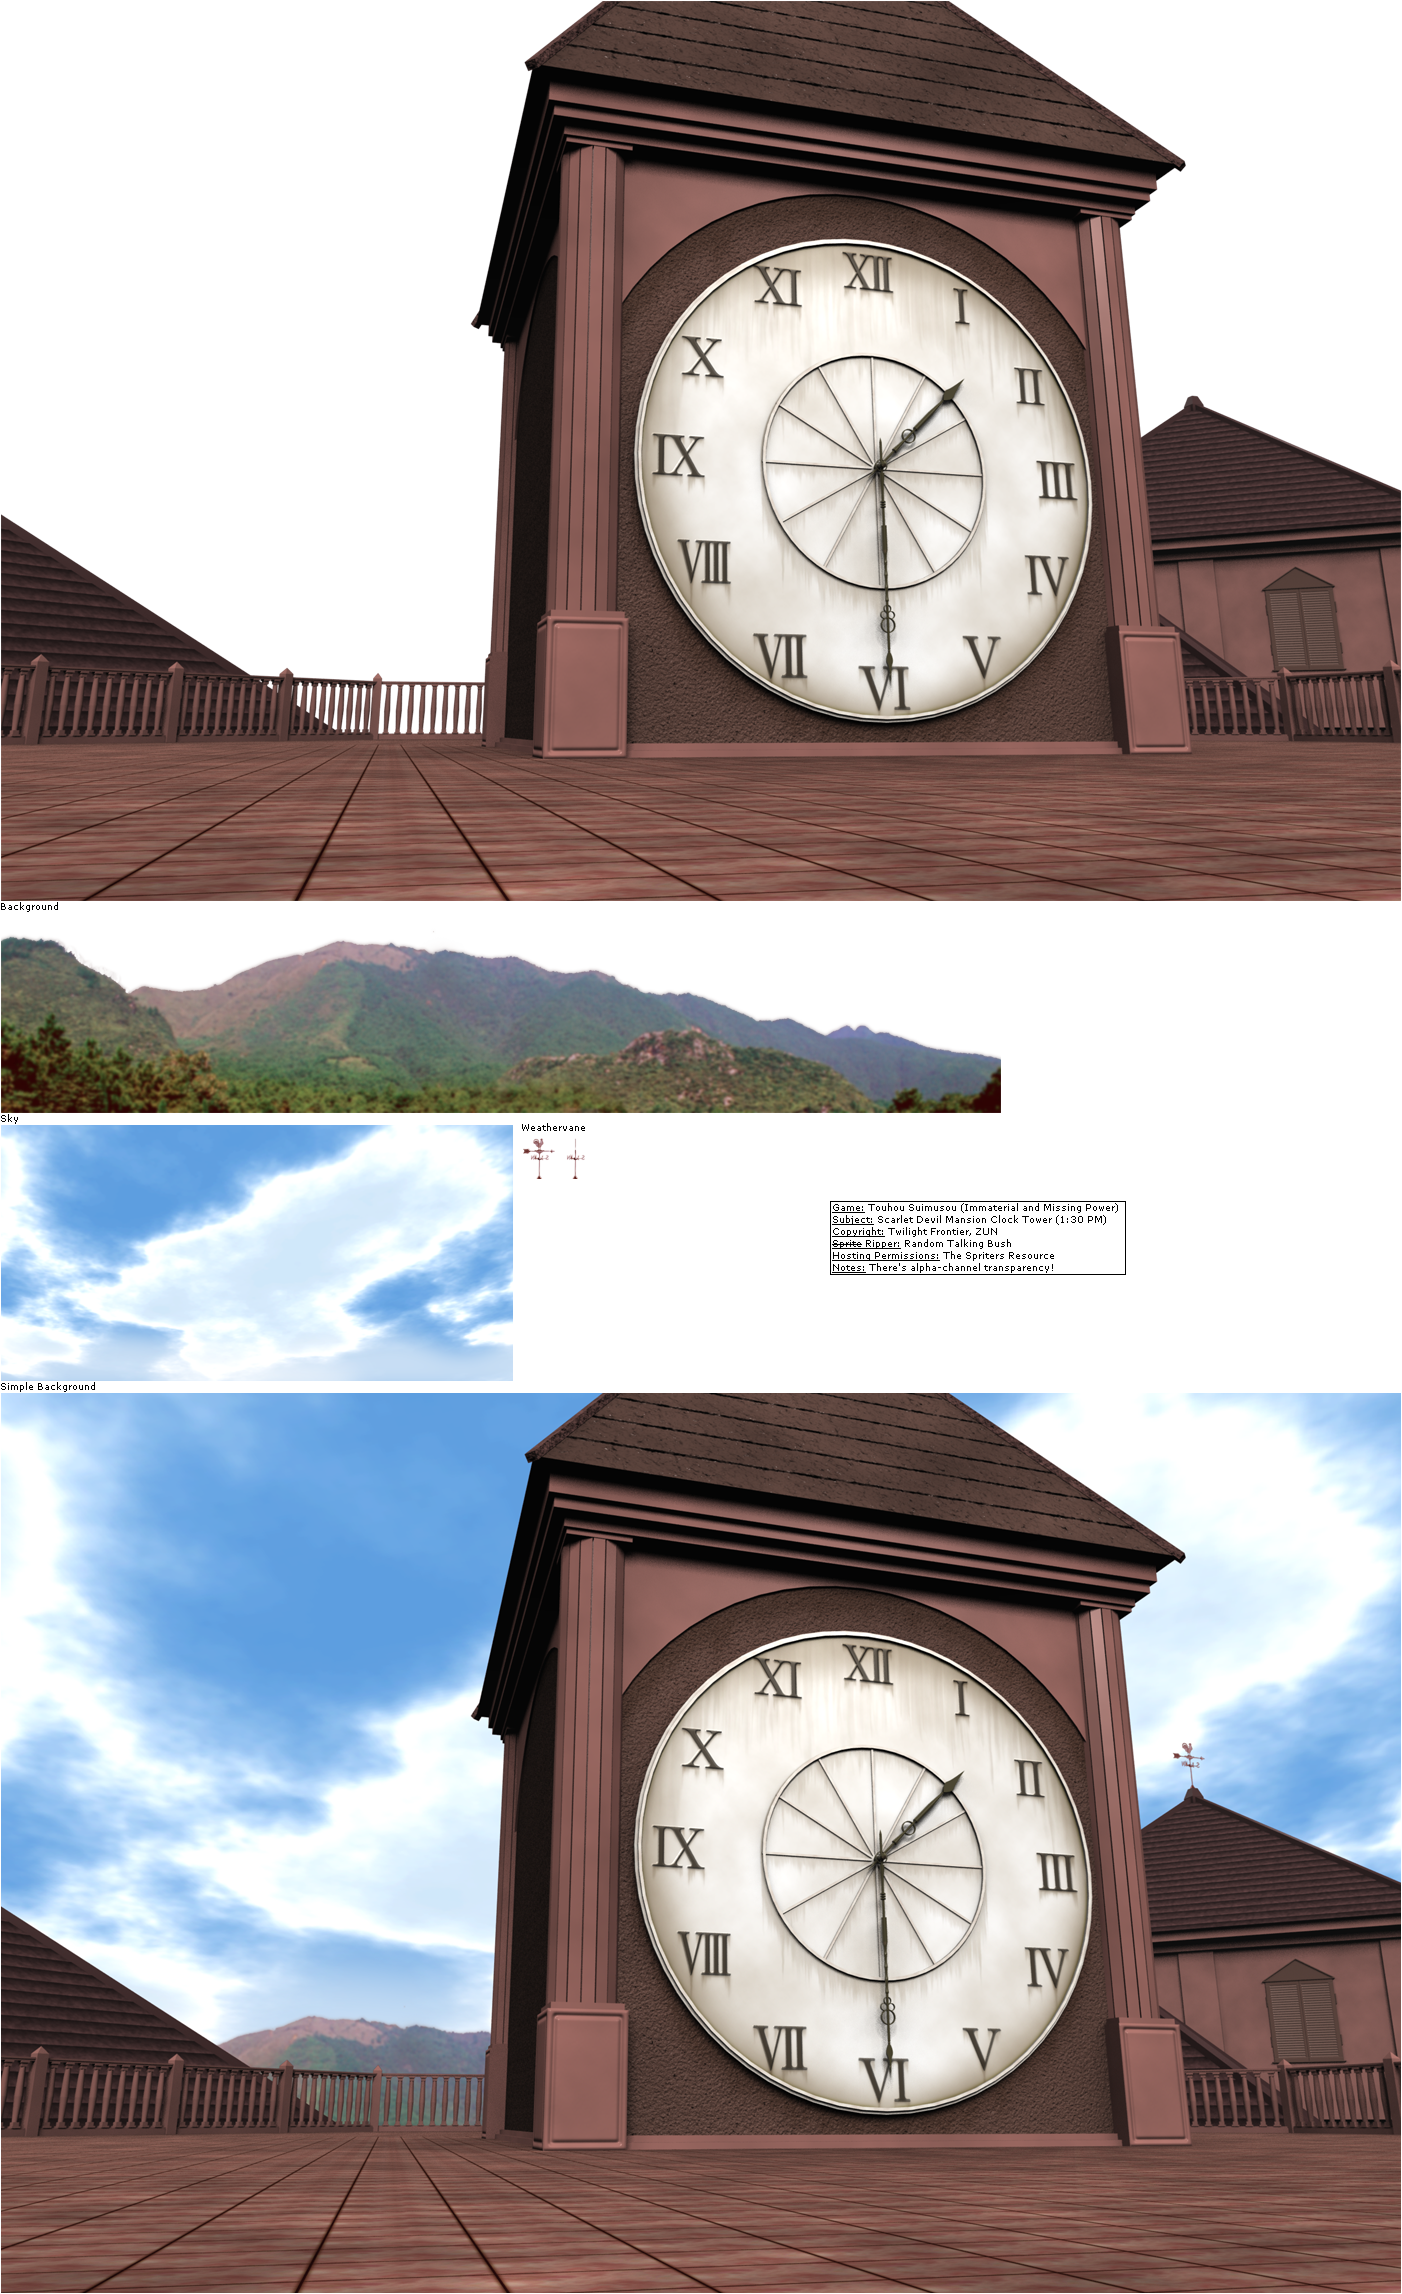 Scarlet Devil Mansion Clock Tower (01:30 PM)